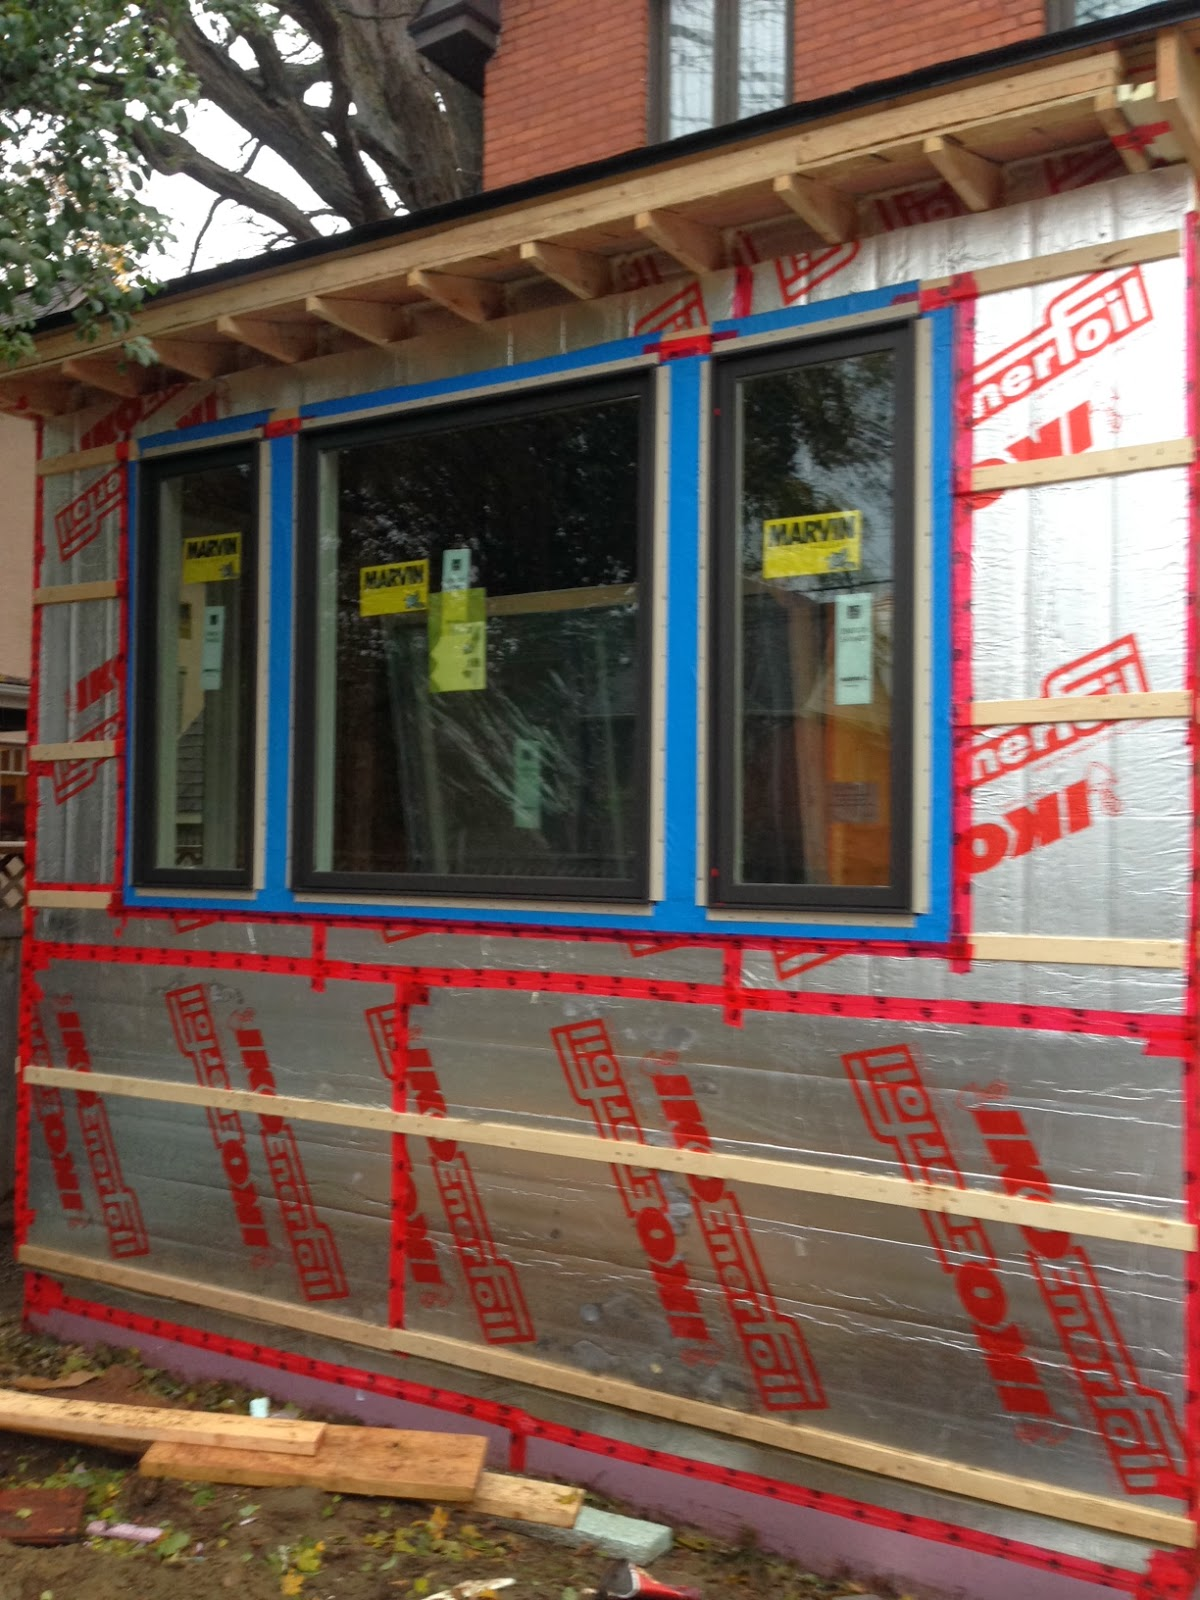 Paul Gratton Ottawa Renovation Contractor Christopher Solar extension Day 24 windows